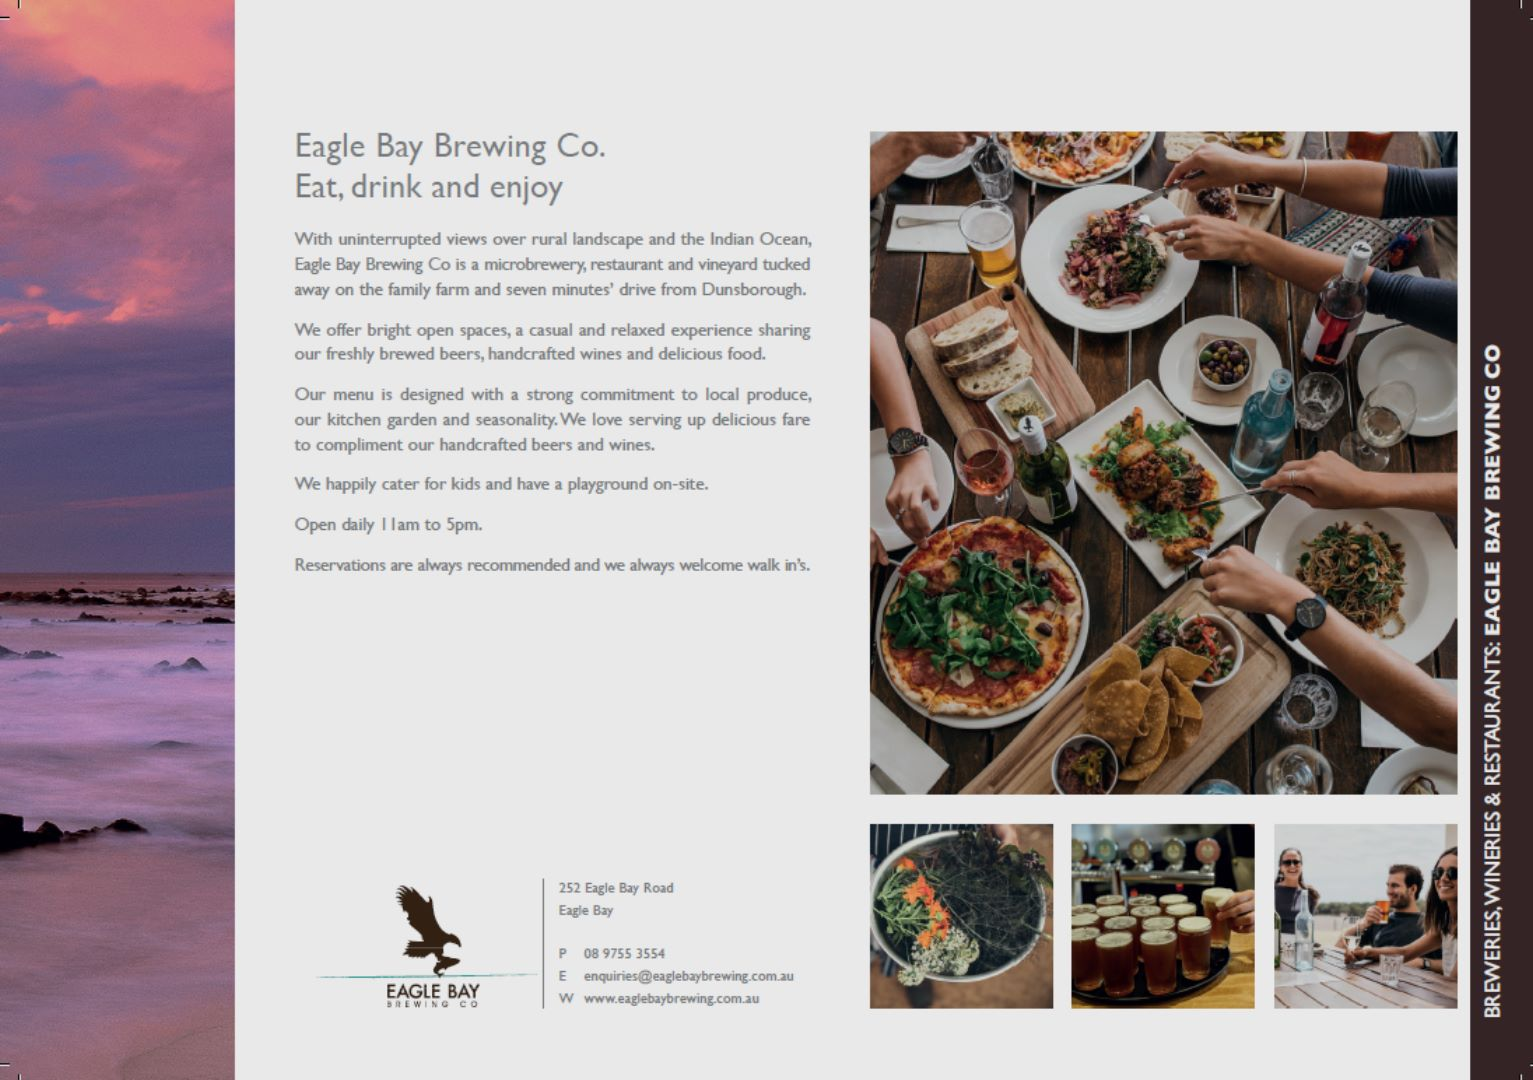 16/17 Experiences Compendium - Eagle Bay Brewing Co